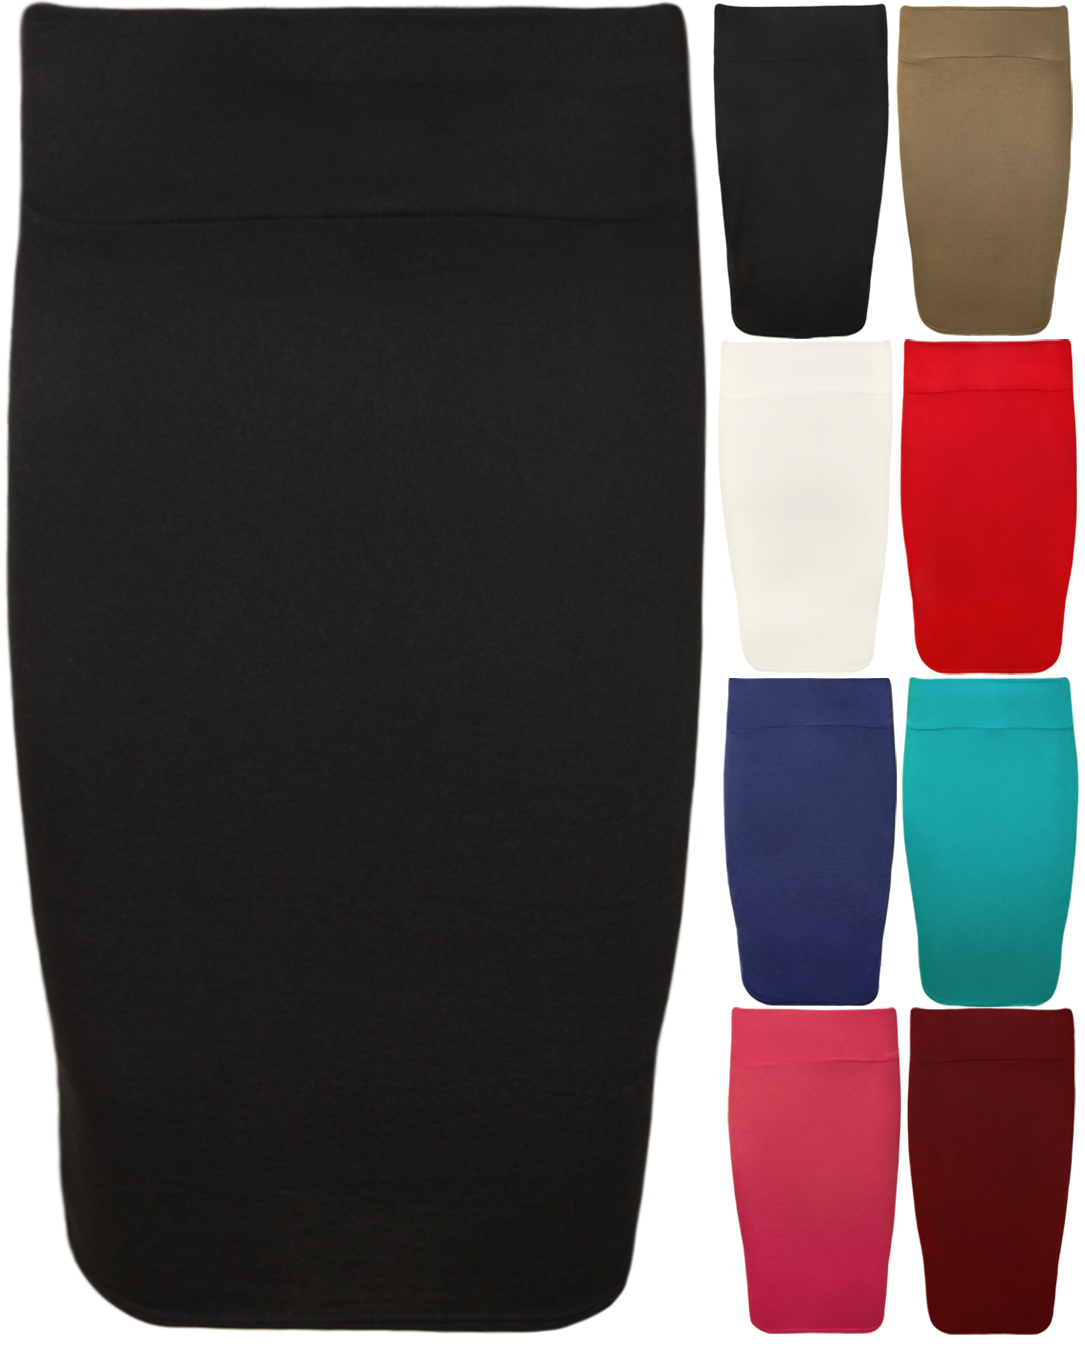 New Womens Plain Bodycon Pencil High Waisted Ladies Stretch MIDI Skirt 8 14 | eBay